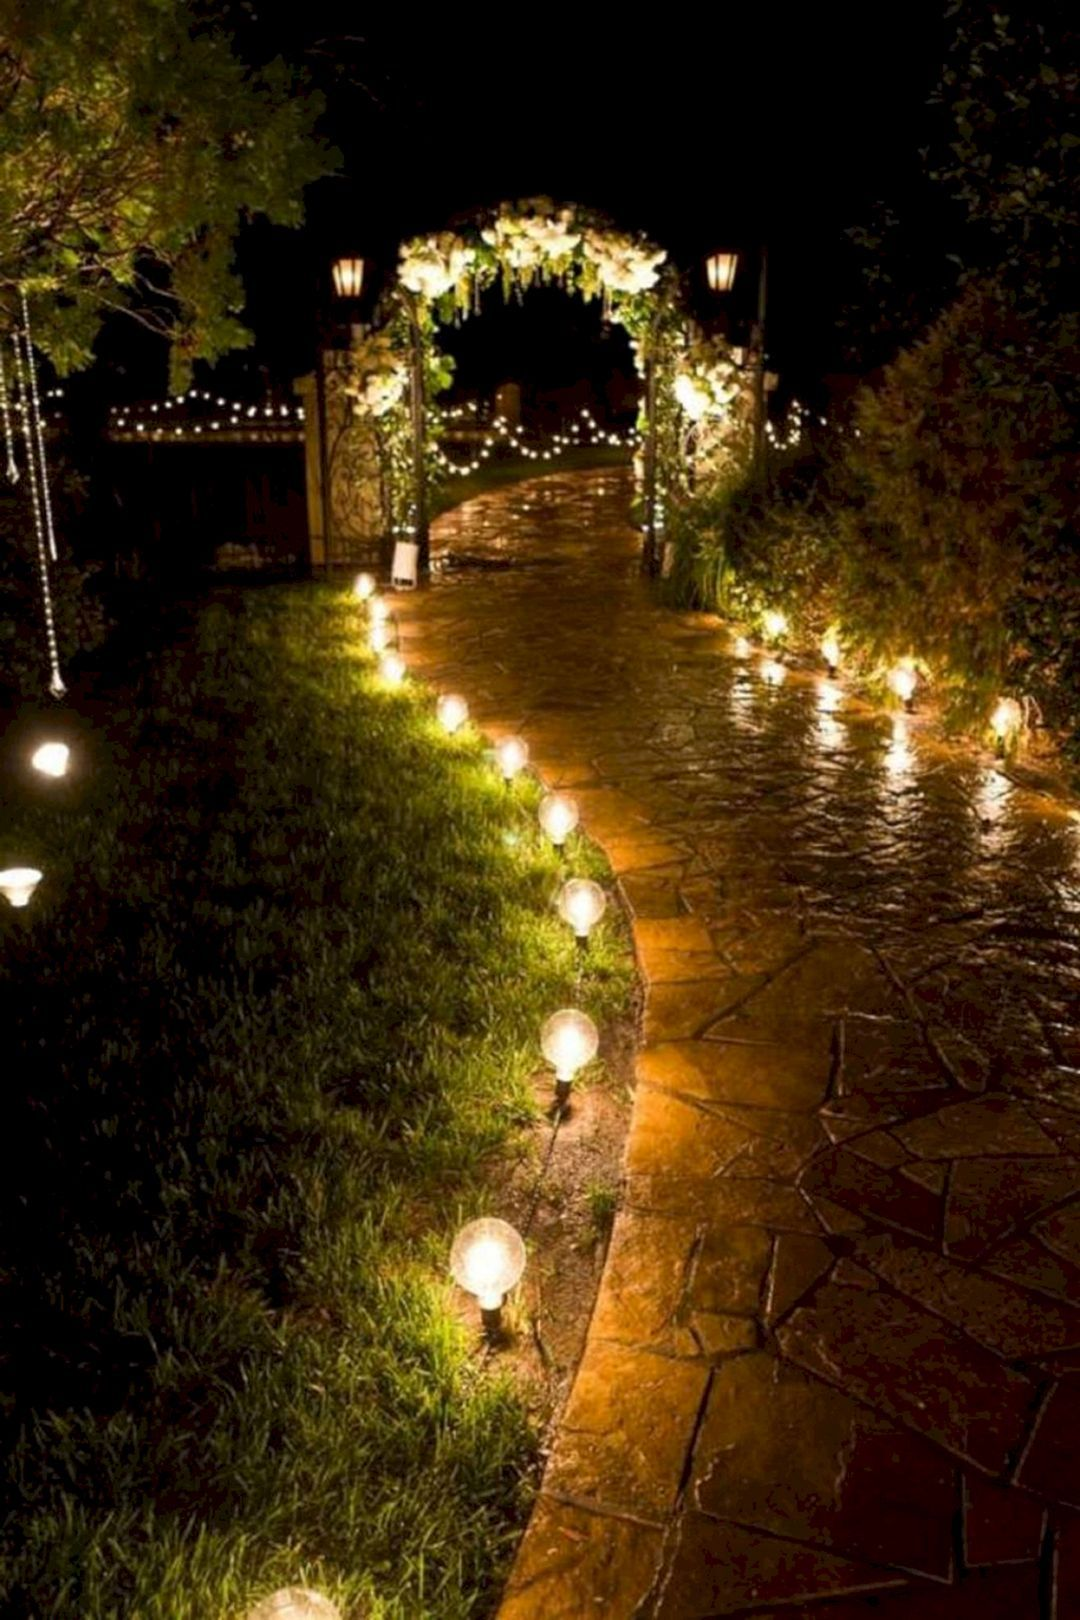 Indirekte Gartenbeleuchtung 24 Beautiful And Romantic Gardens Lighting Decor At Night